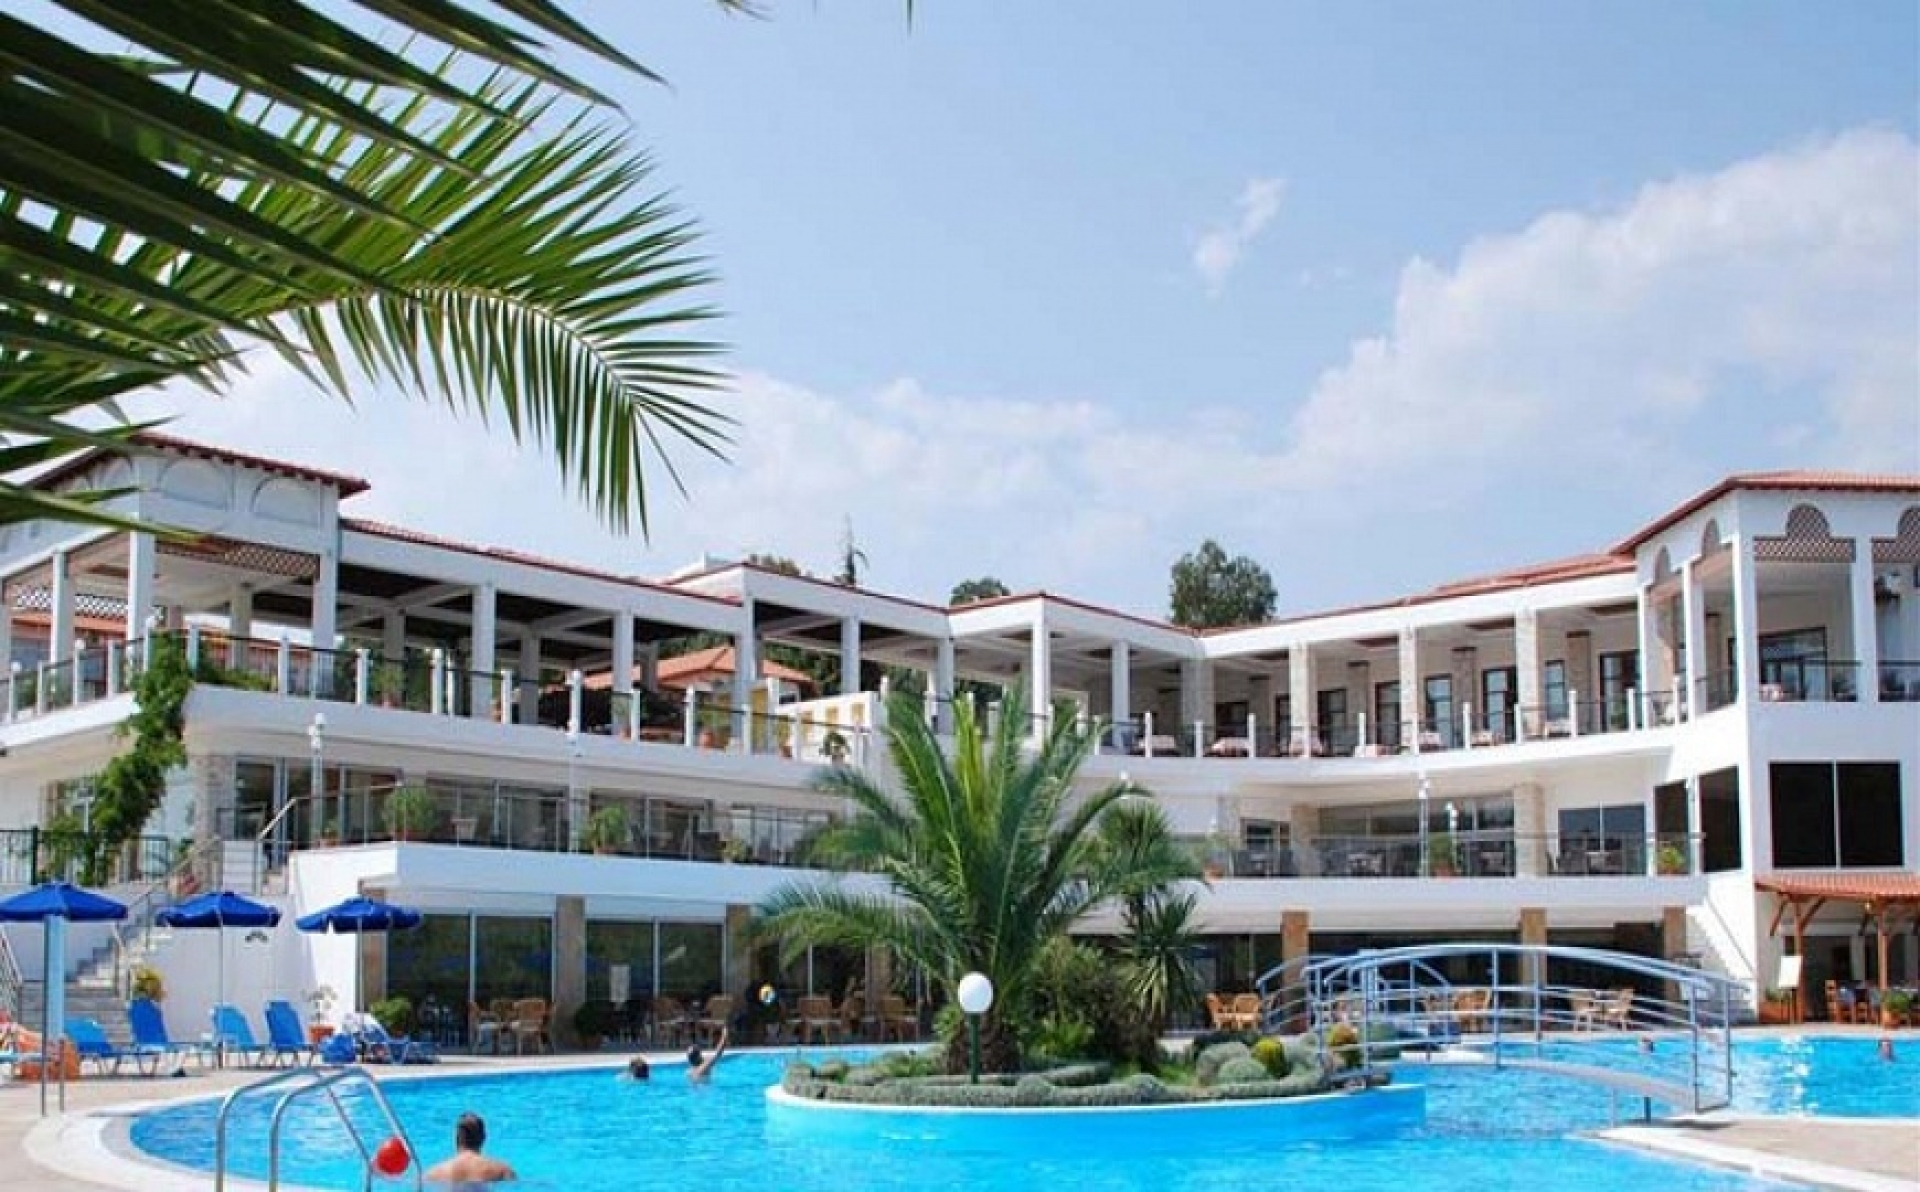 HOTEL ALEXANDROS PALACE*****, Ouranopolis